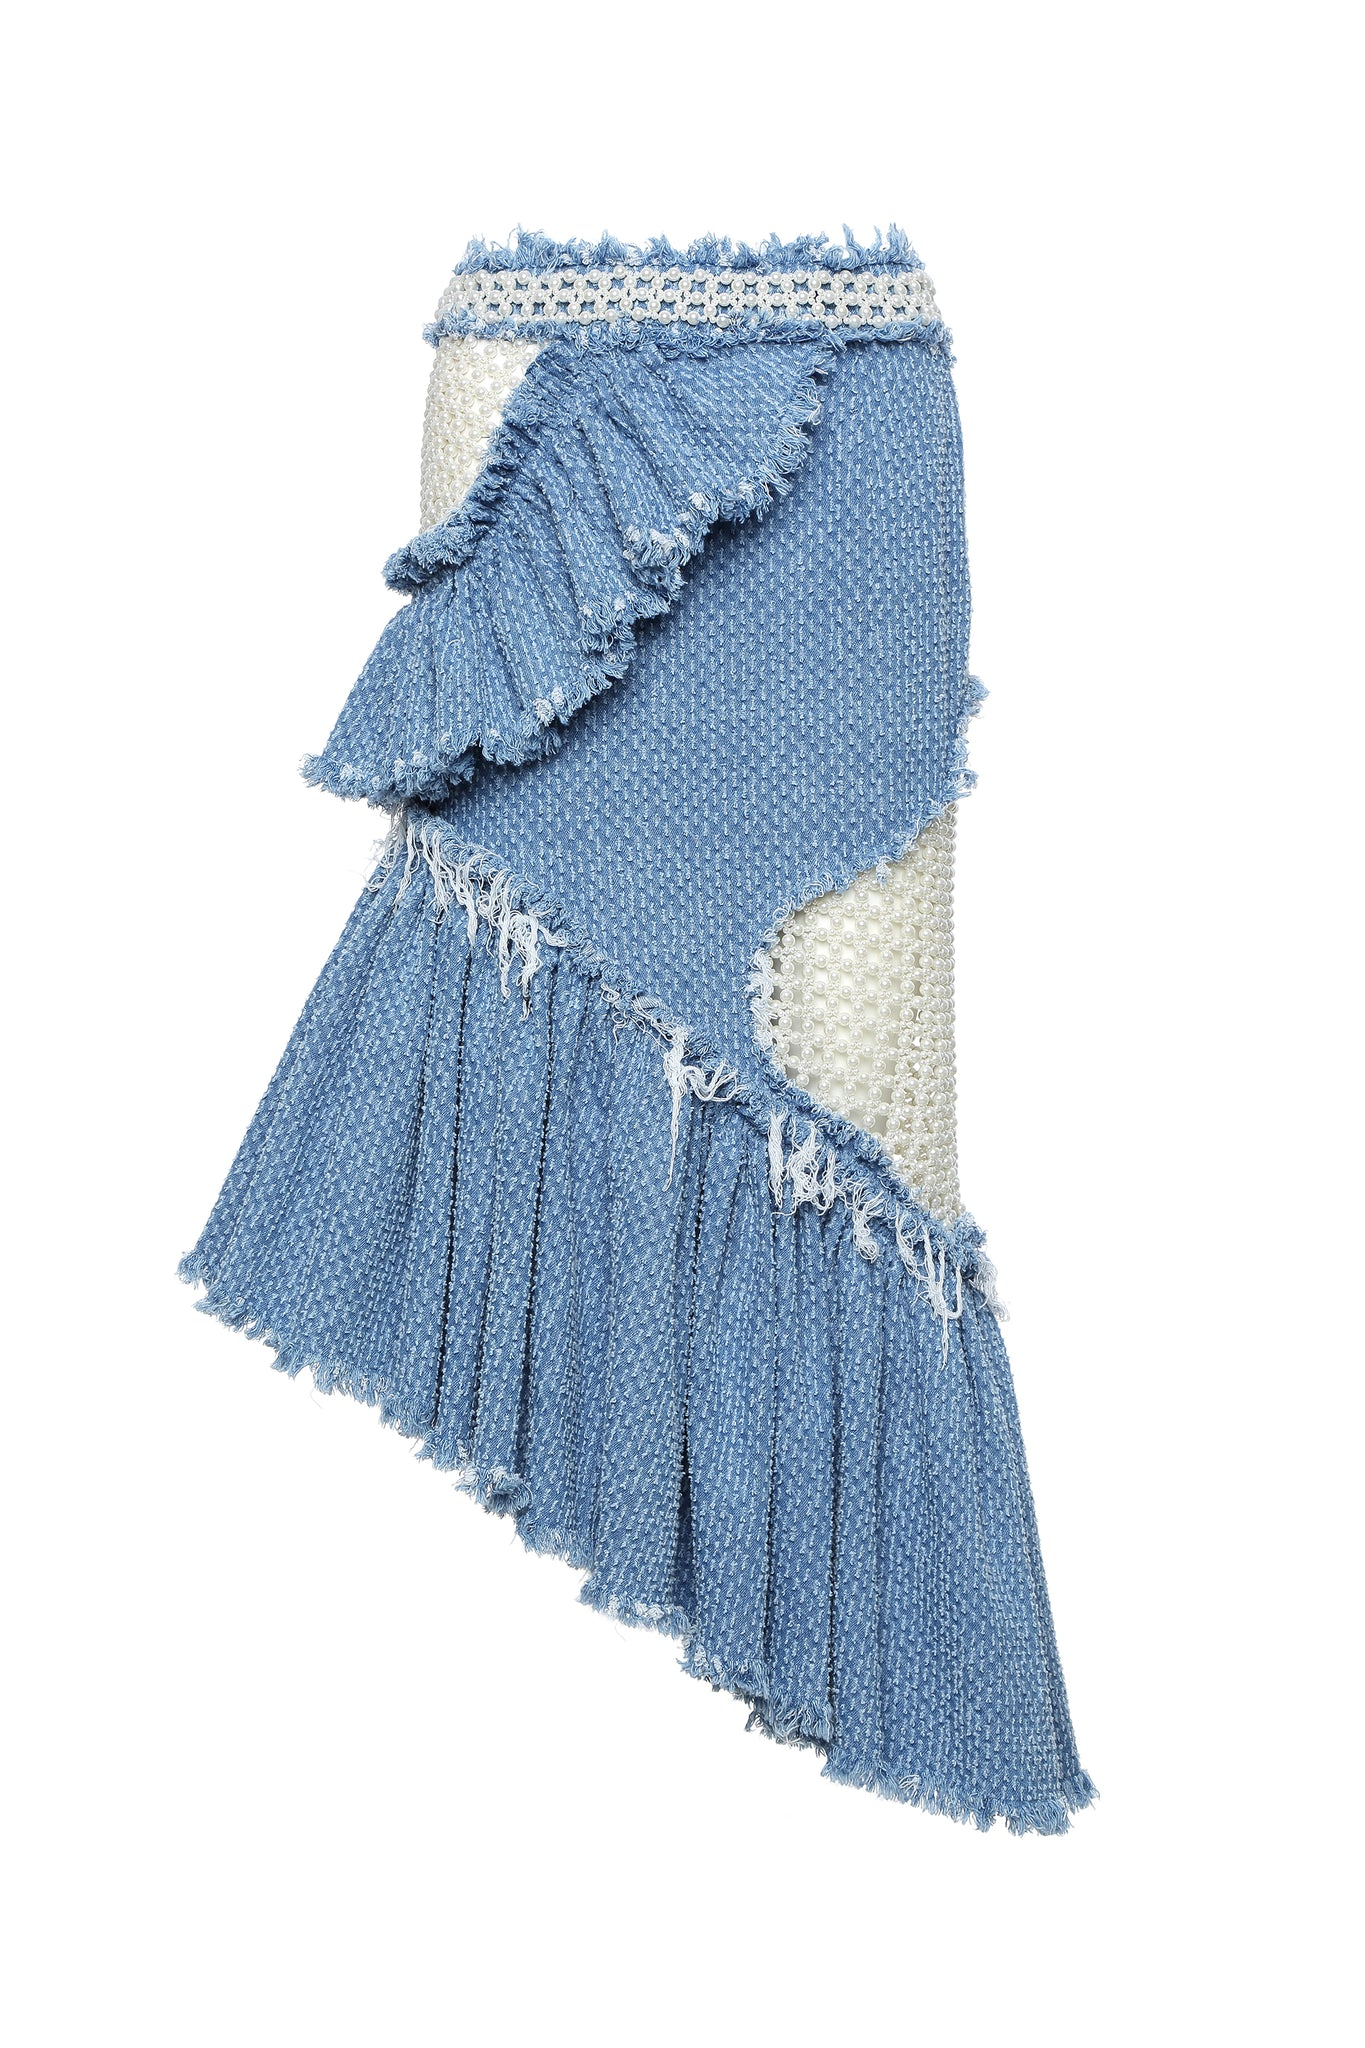 Skirt, Denim with Diagonal Ruffles and Pearl Embellishment